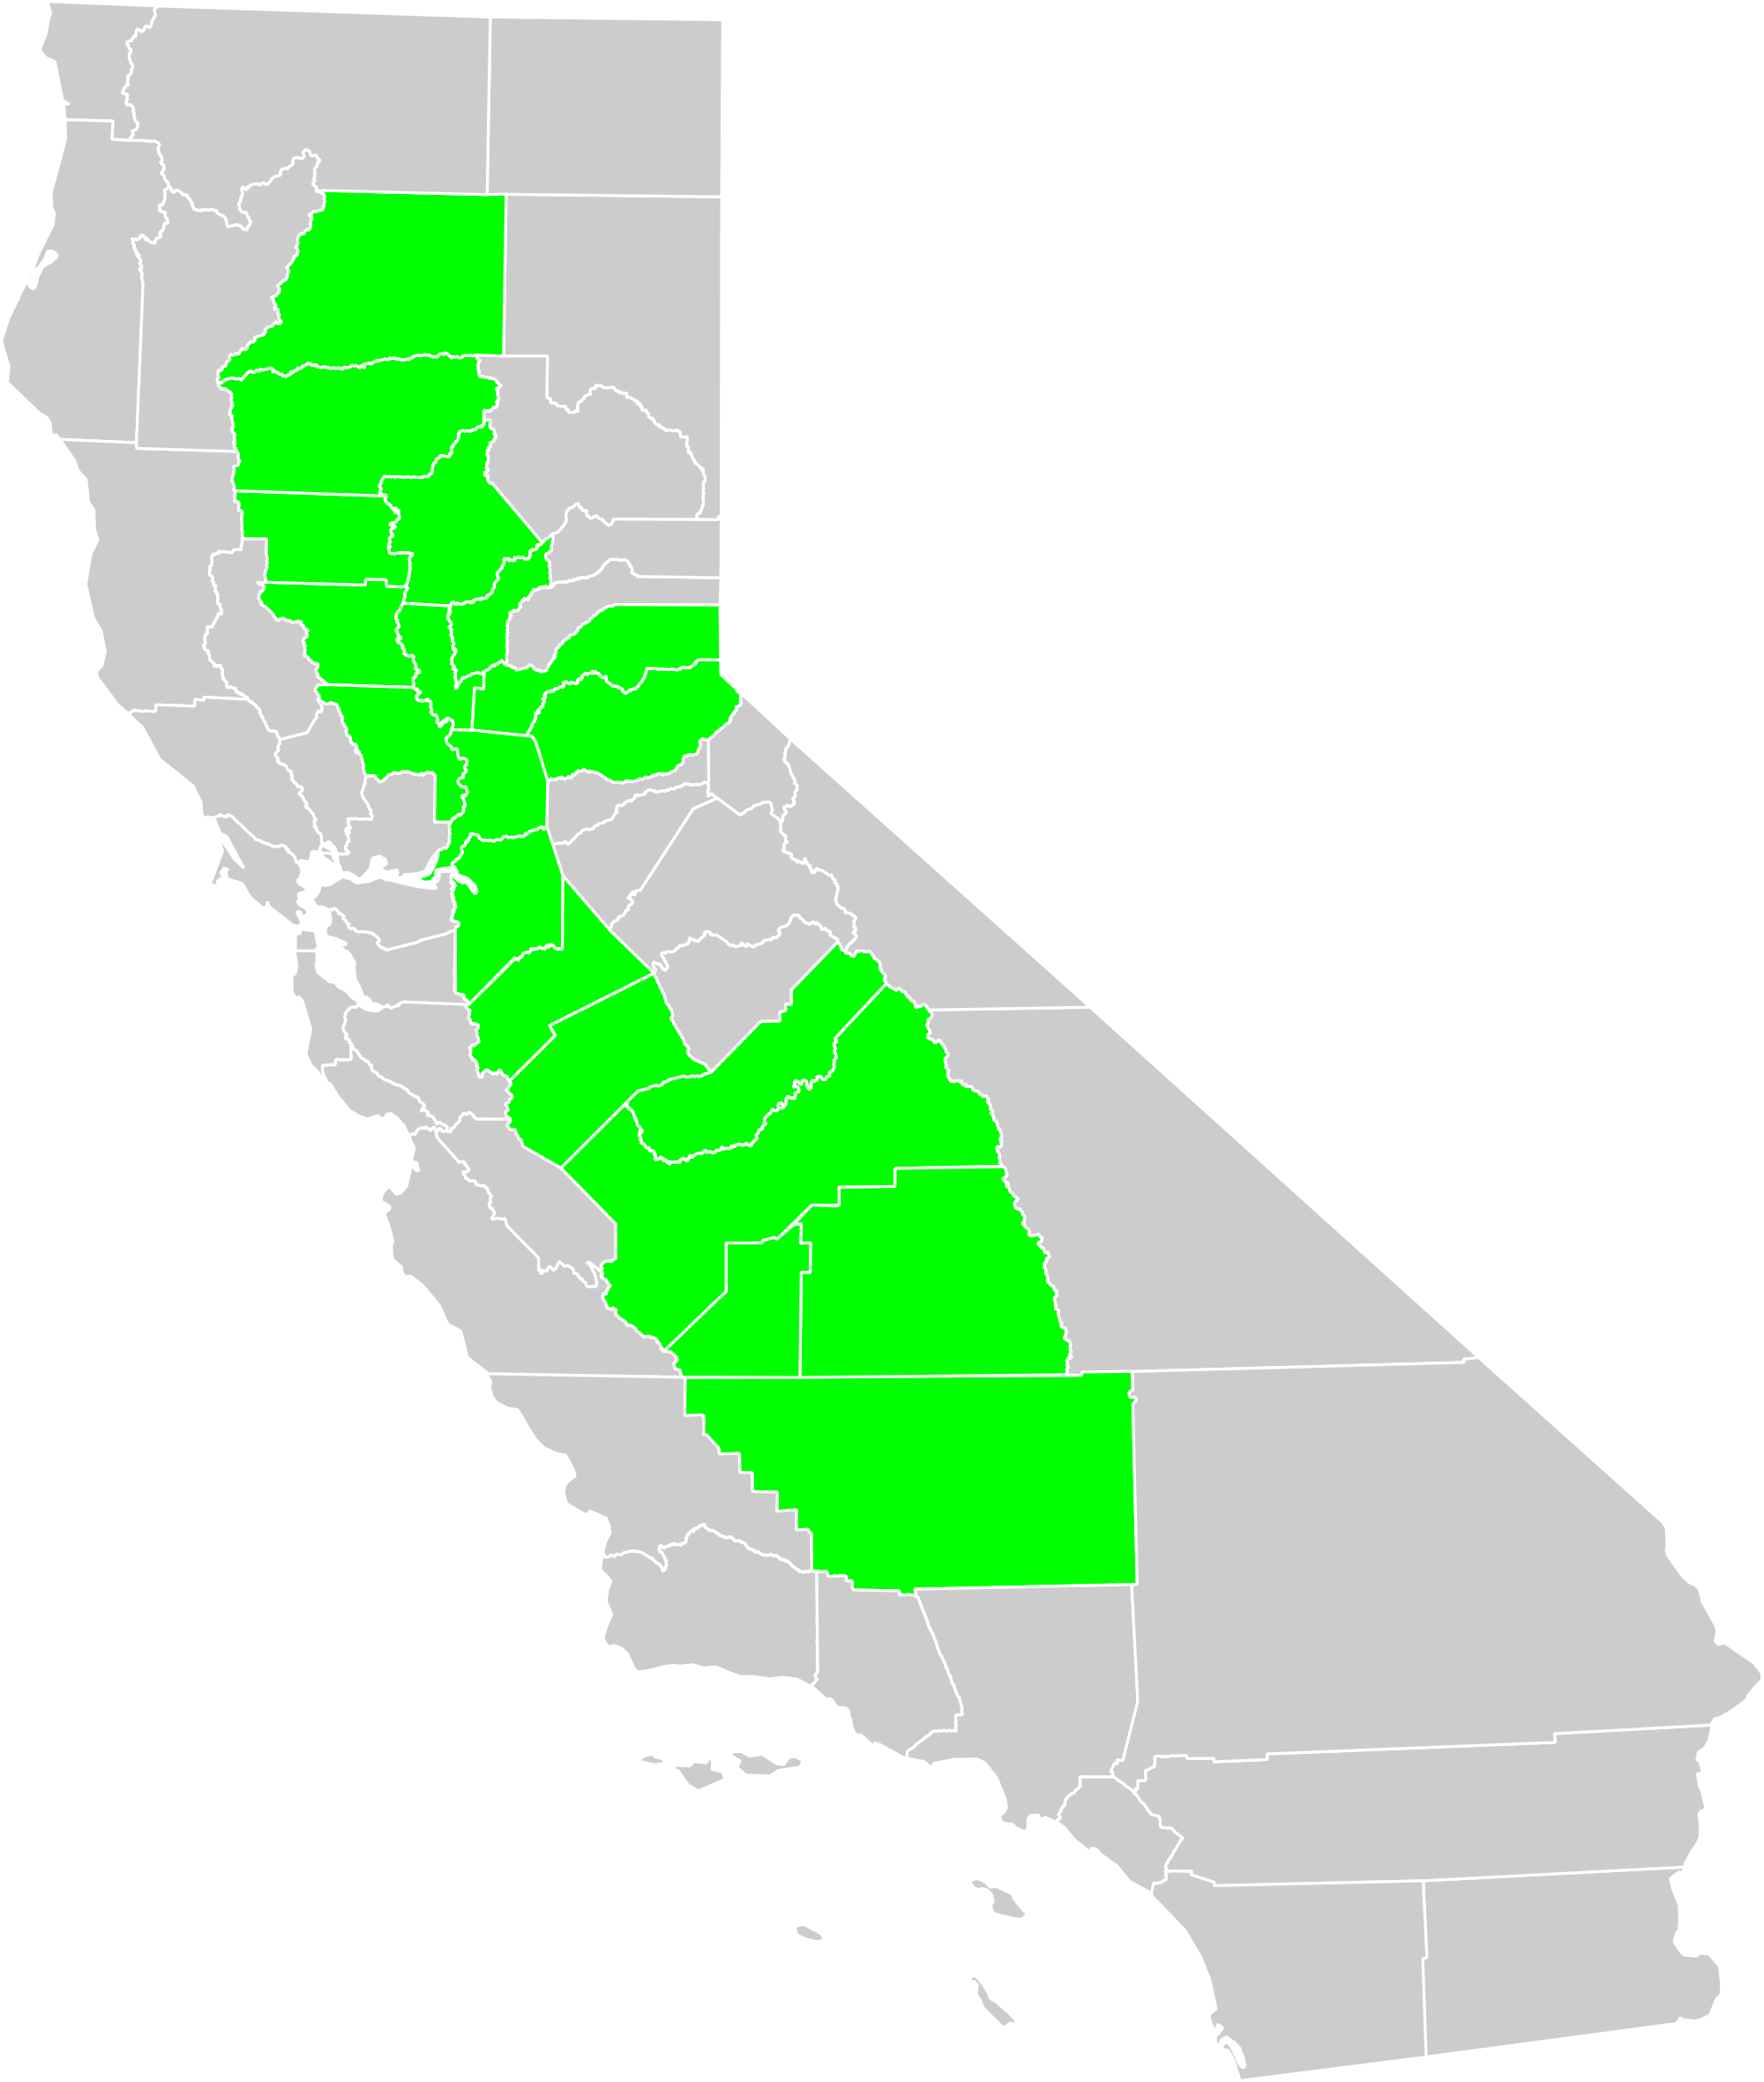 picture stock California s natural regions. Valley clipart physical geography.